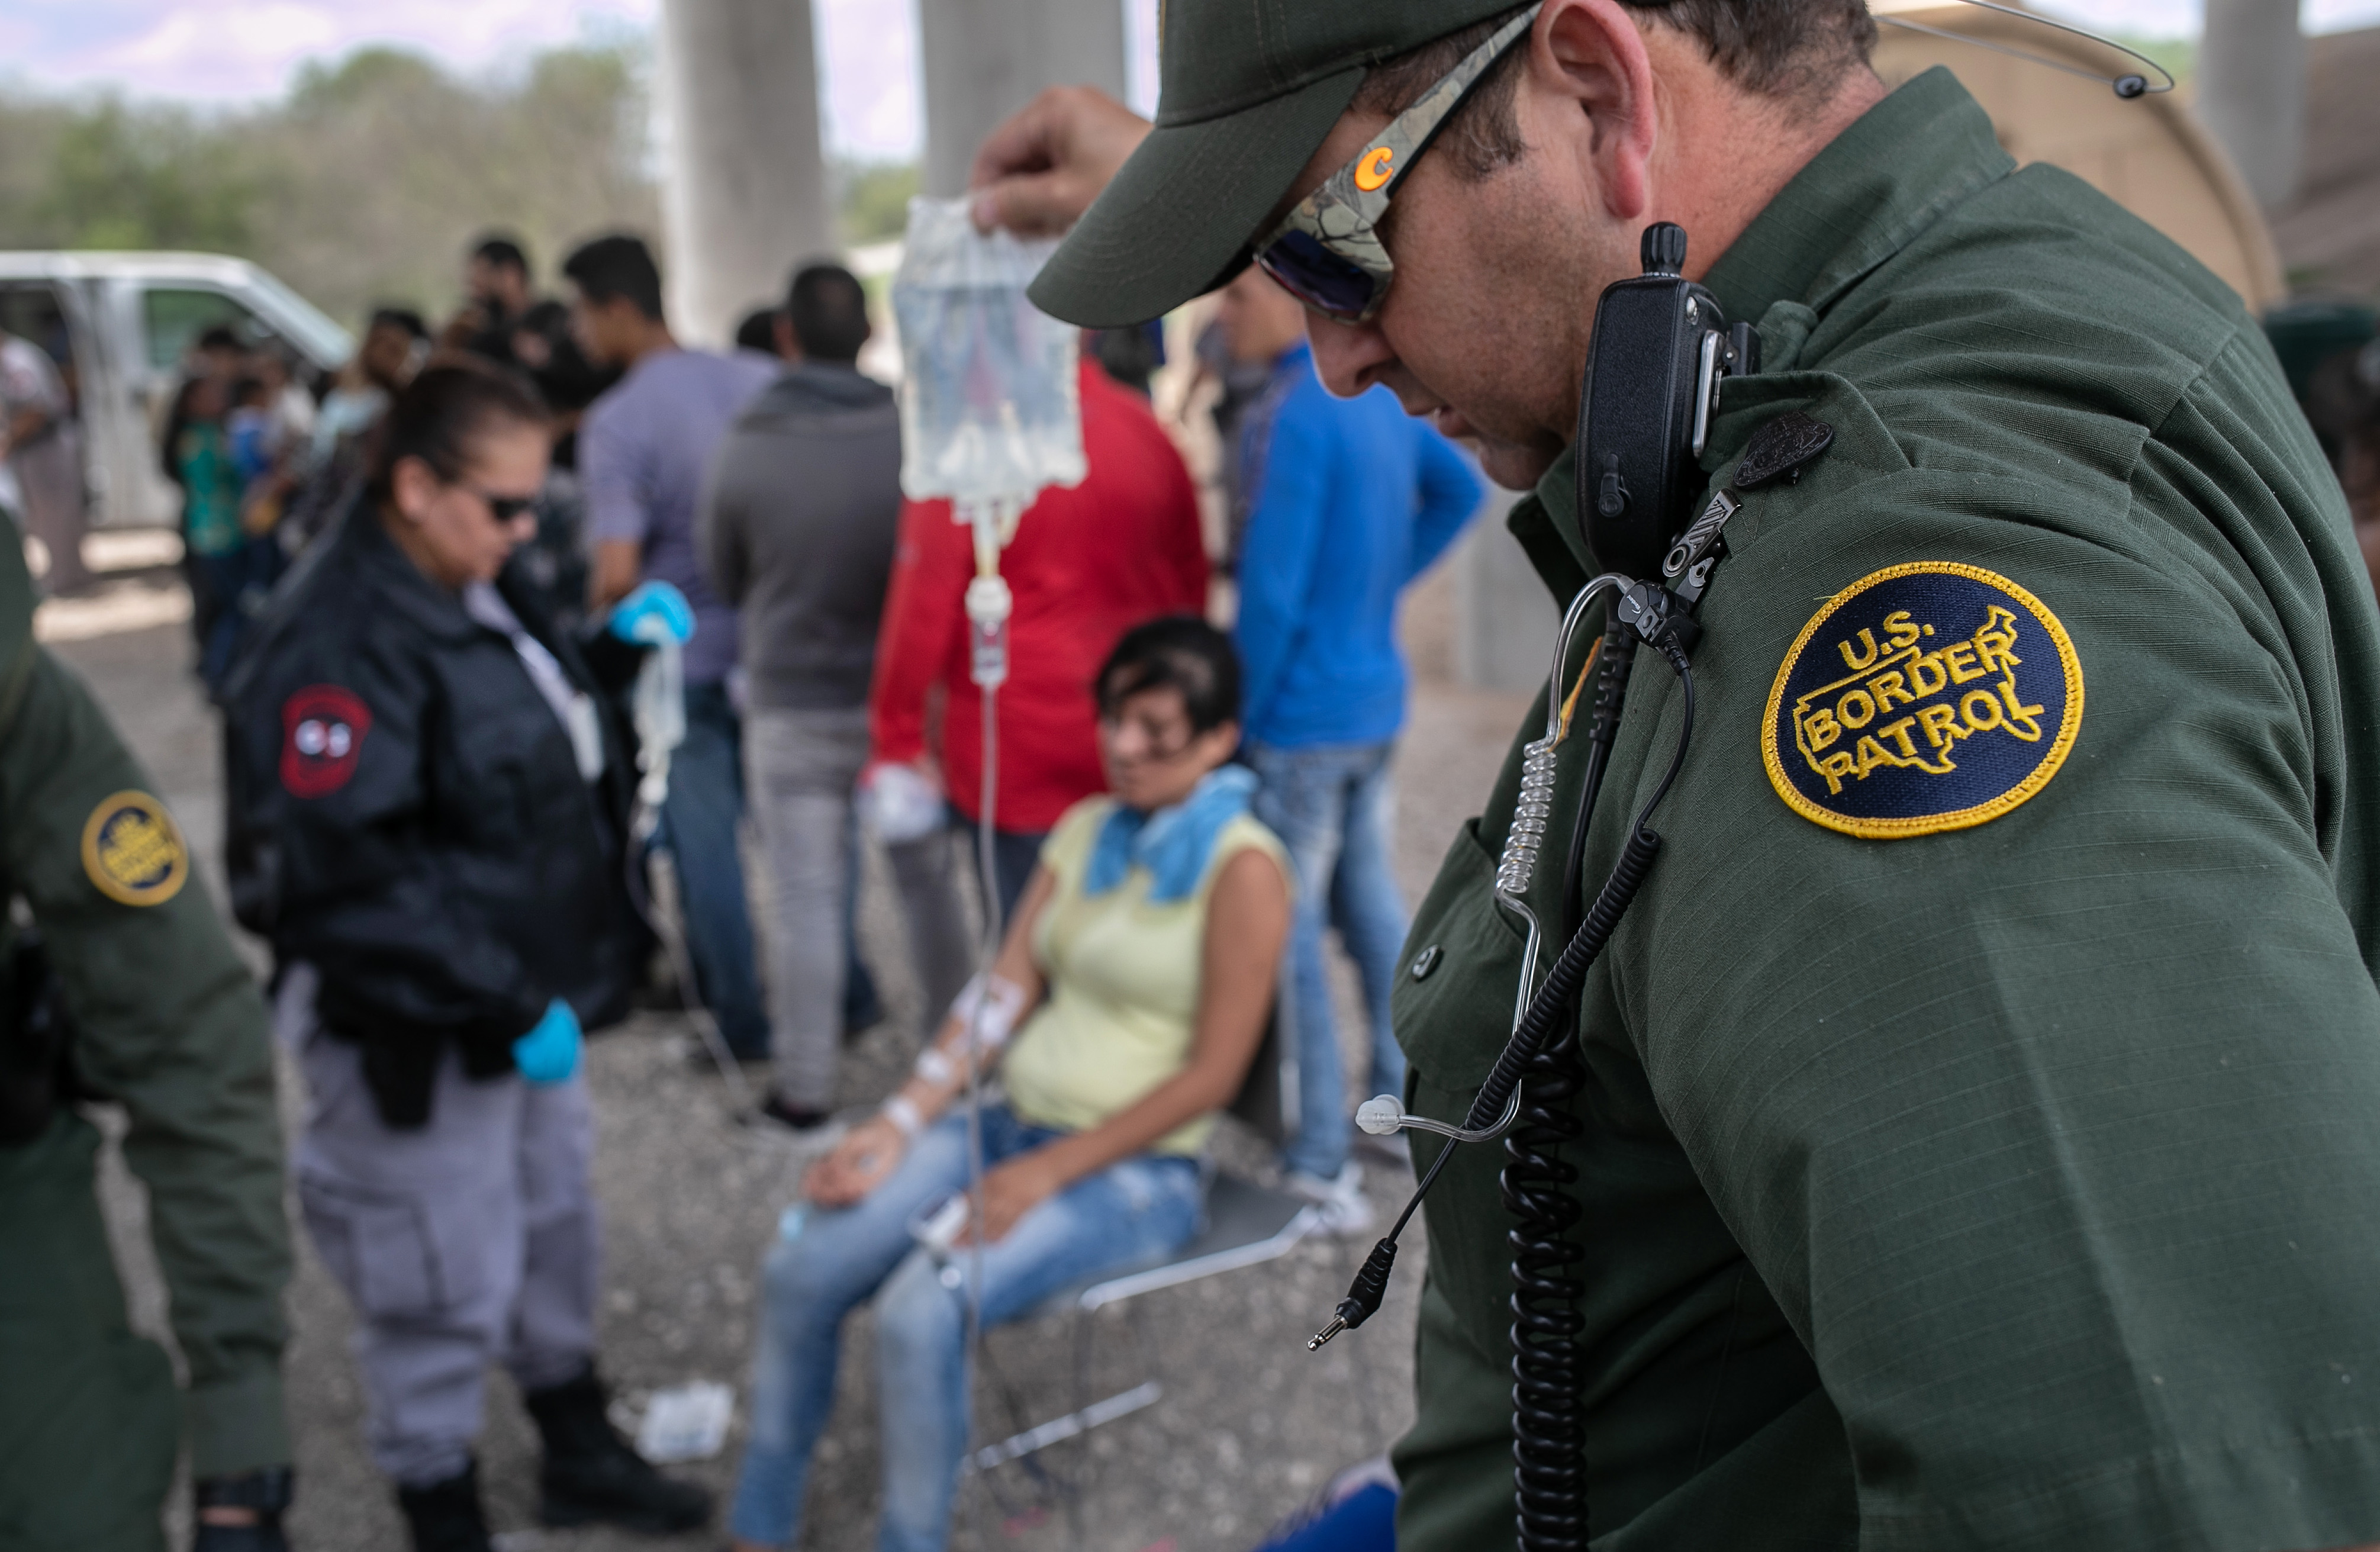 MCALLEN, TEXAS - JULY 02: A U.S. Border Patrol agent holds an IV bag for an immigrant suffering from heat exhaustion after taking her into custody on July 02, 2019 in McAllen, Texas. The immigrants, mostly families from Central America, turned themselves in to border agents after rafting across the Rio Grande from Mexico to seek political asylum in the United States. (Photo by John Moore/Getty Images)